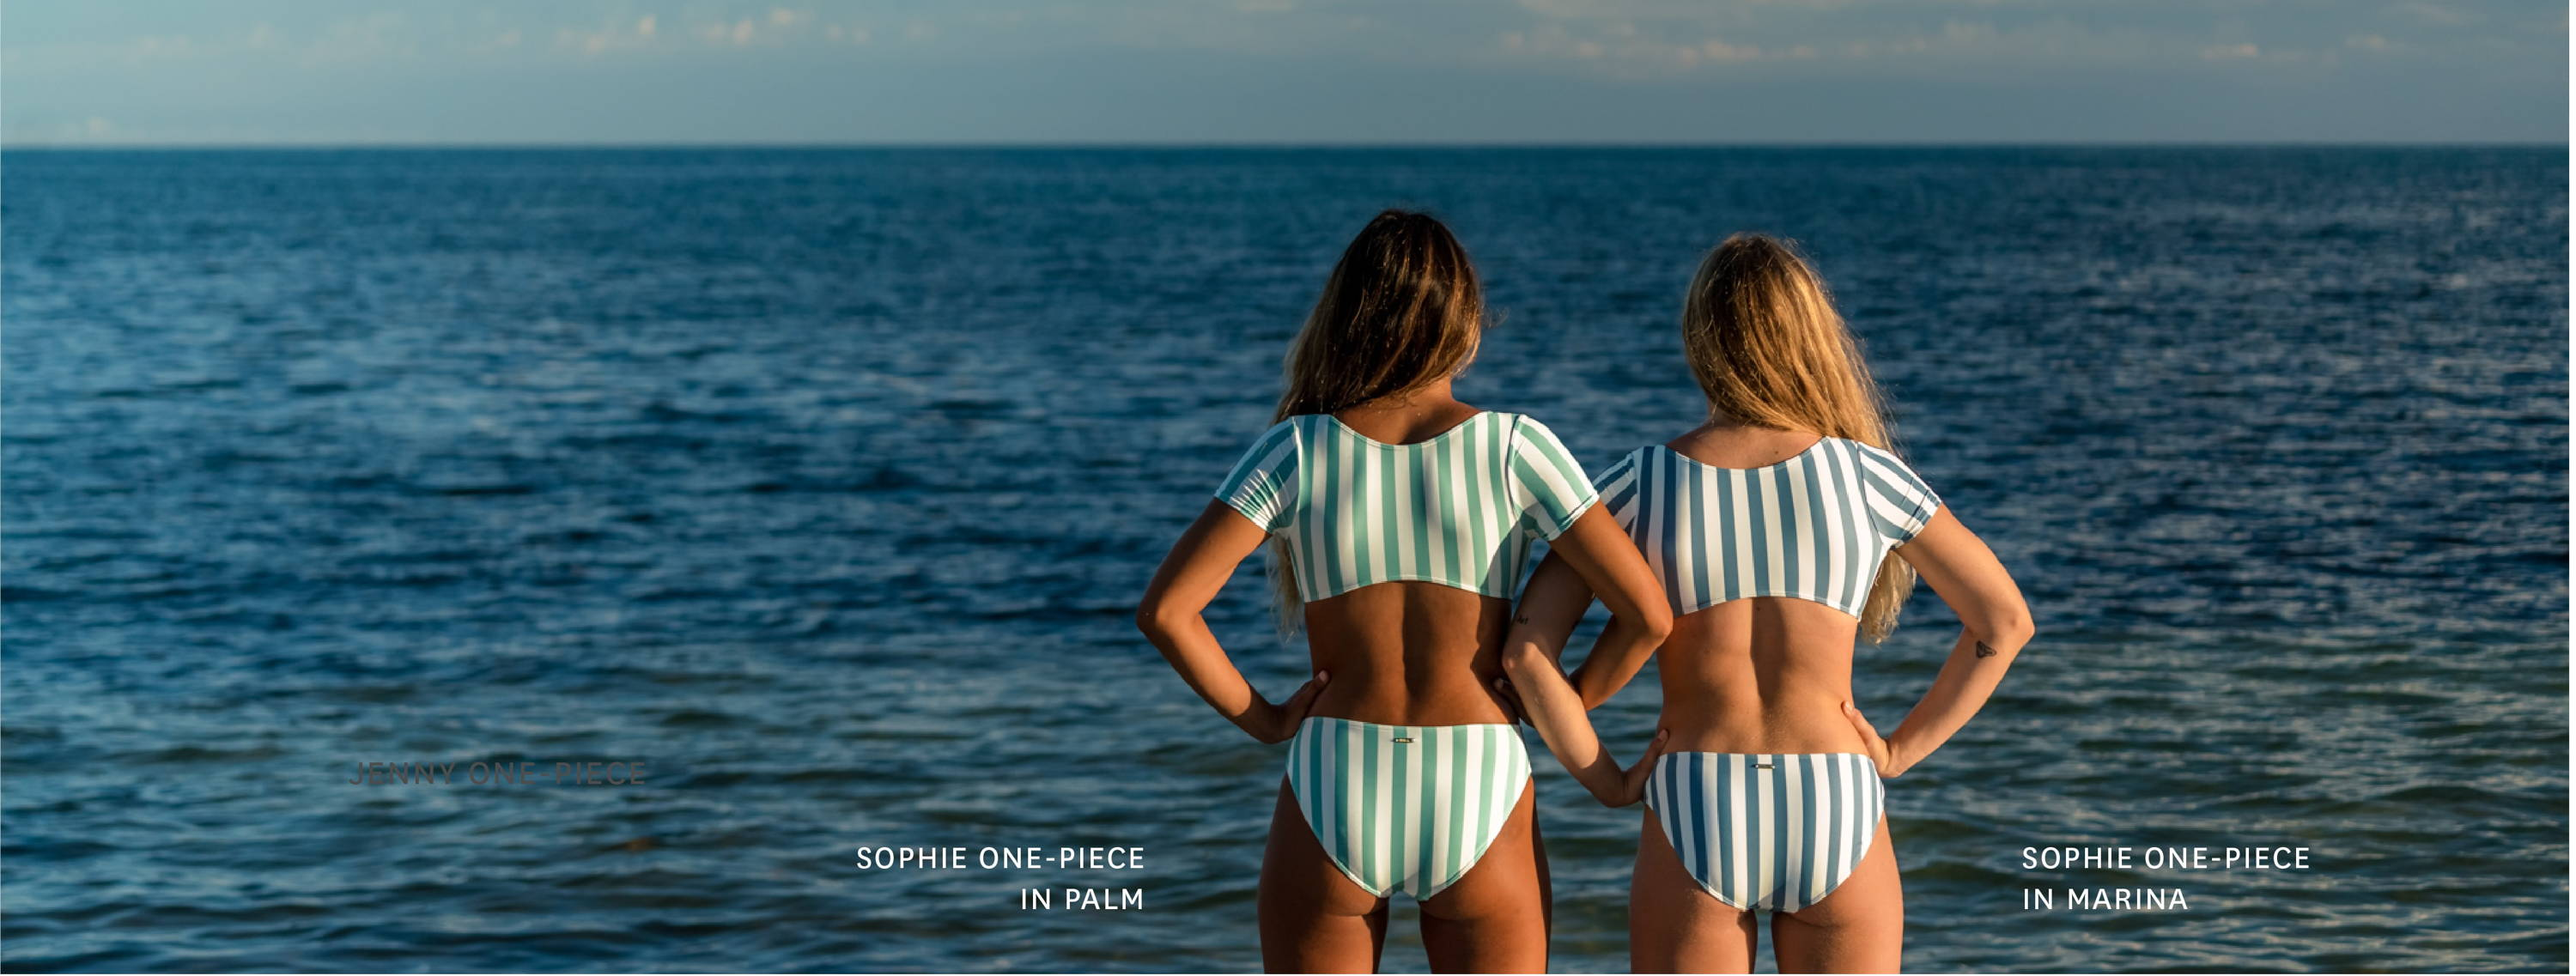 Get the Sophie One-Piece in our Airlie (Palm) print!